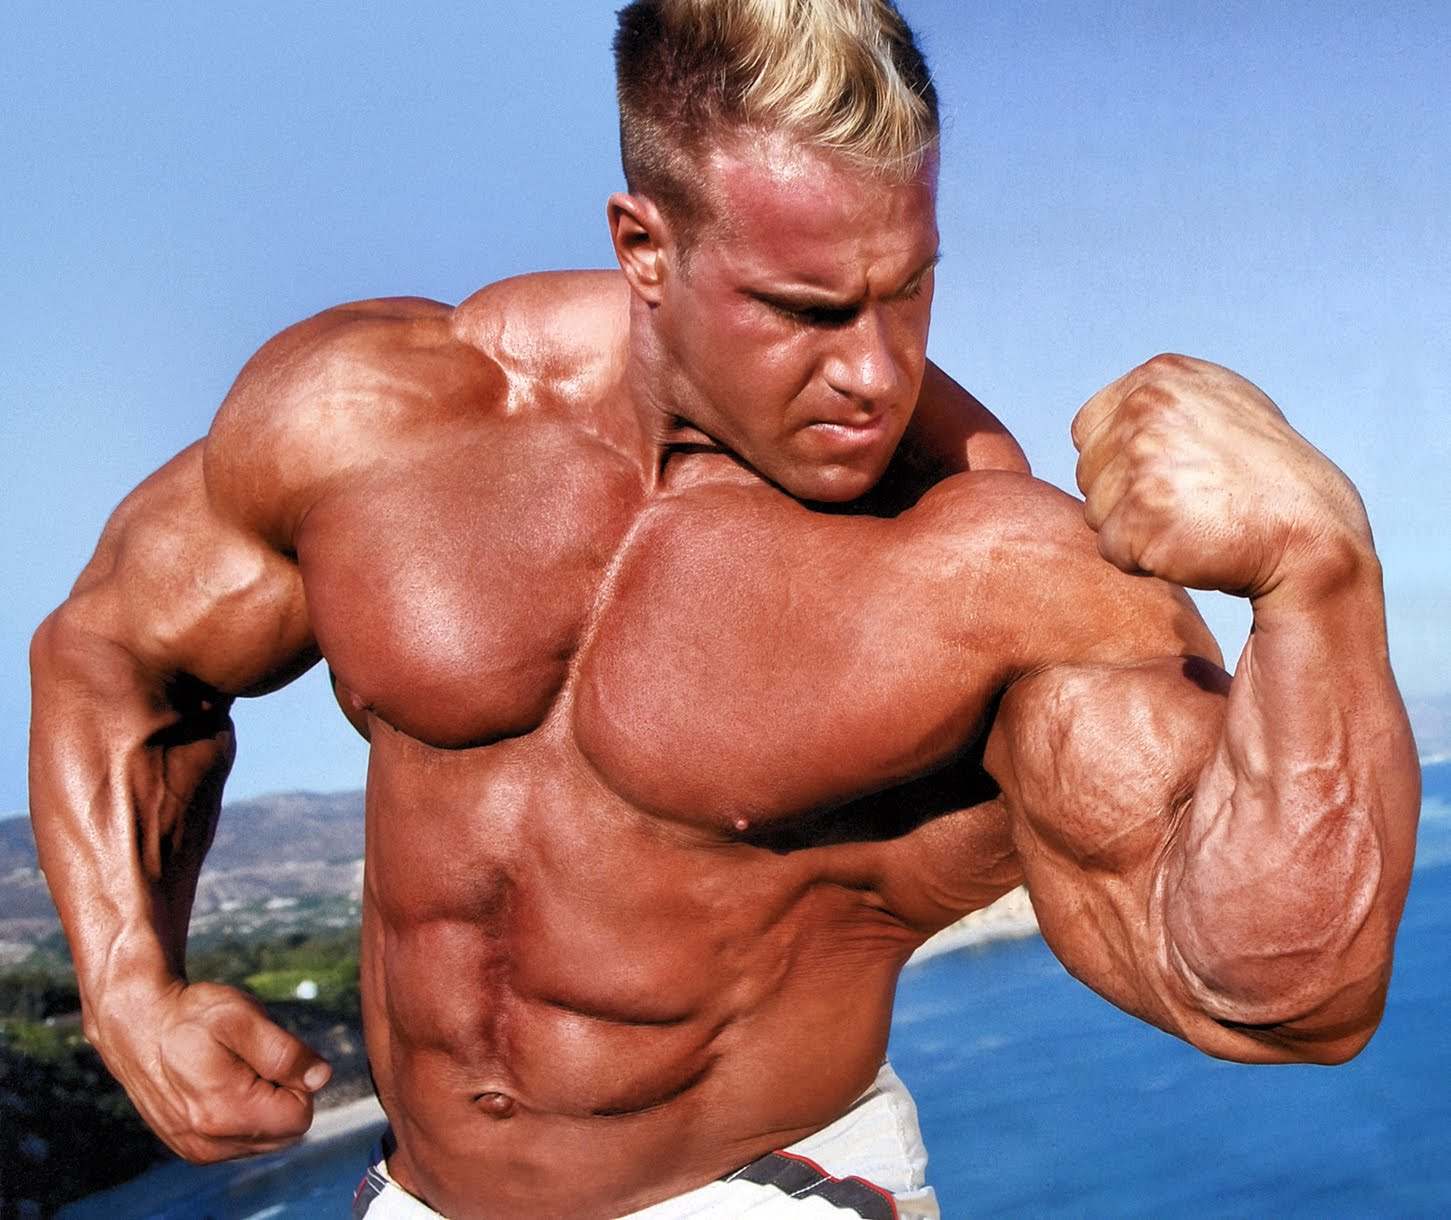 bodybuilding latest hd wallpapers latest hd wallpapers